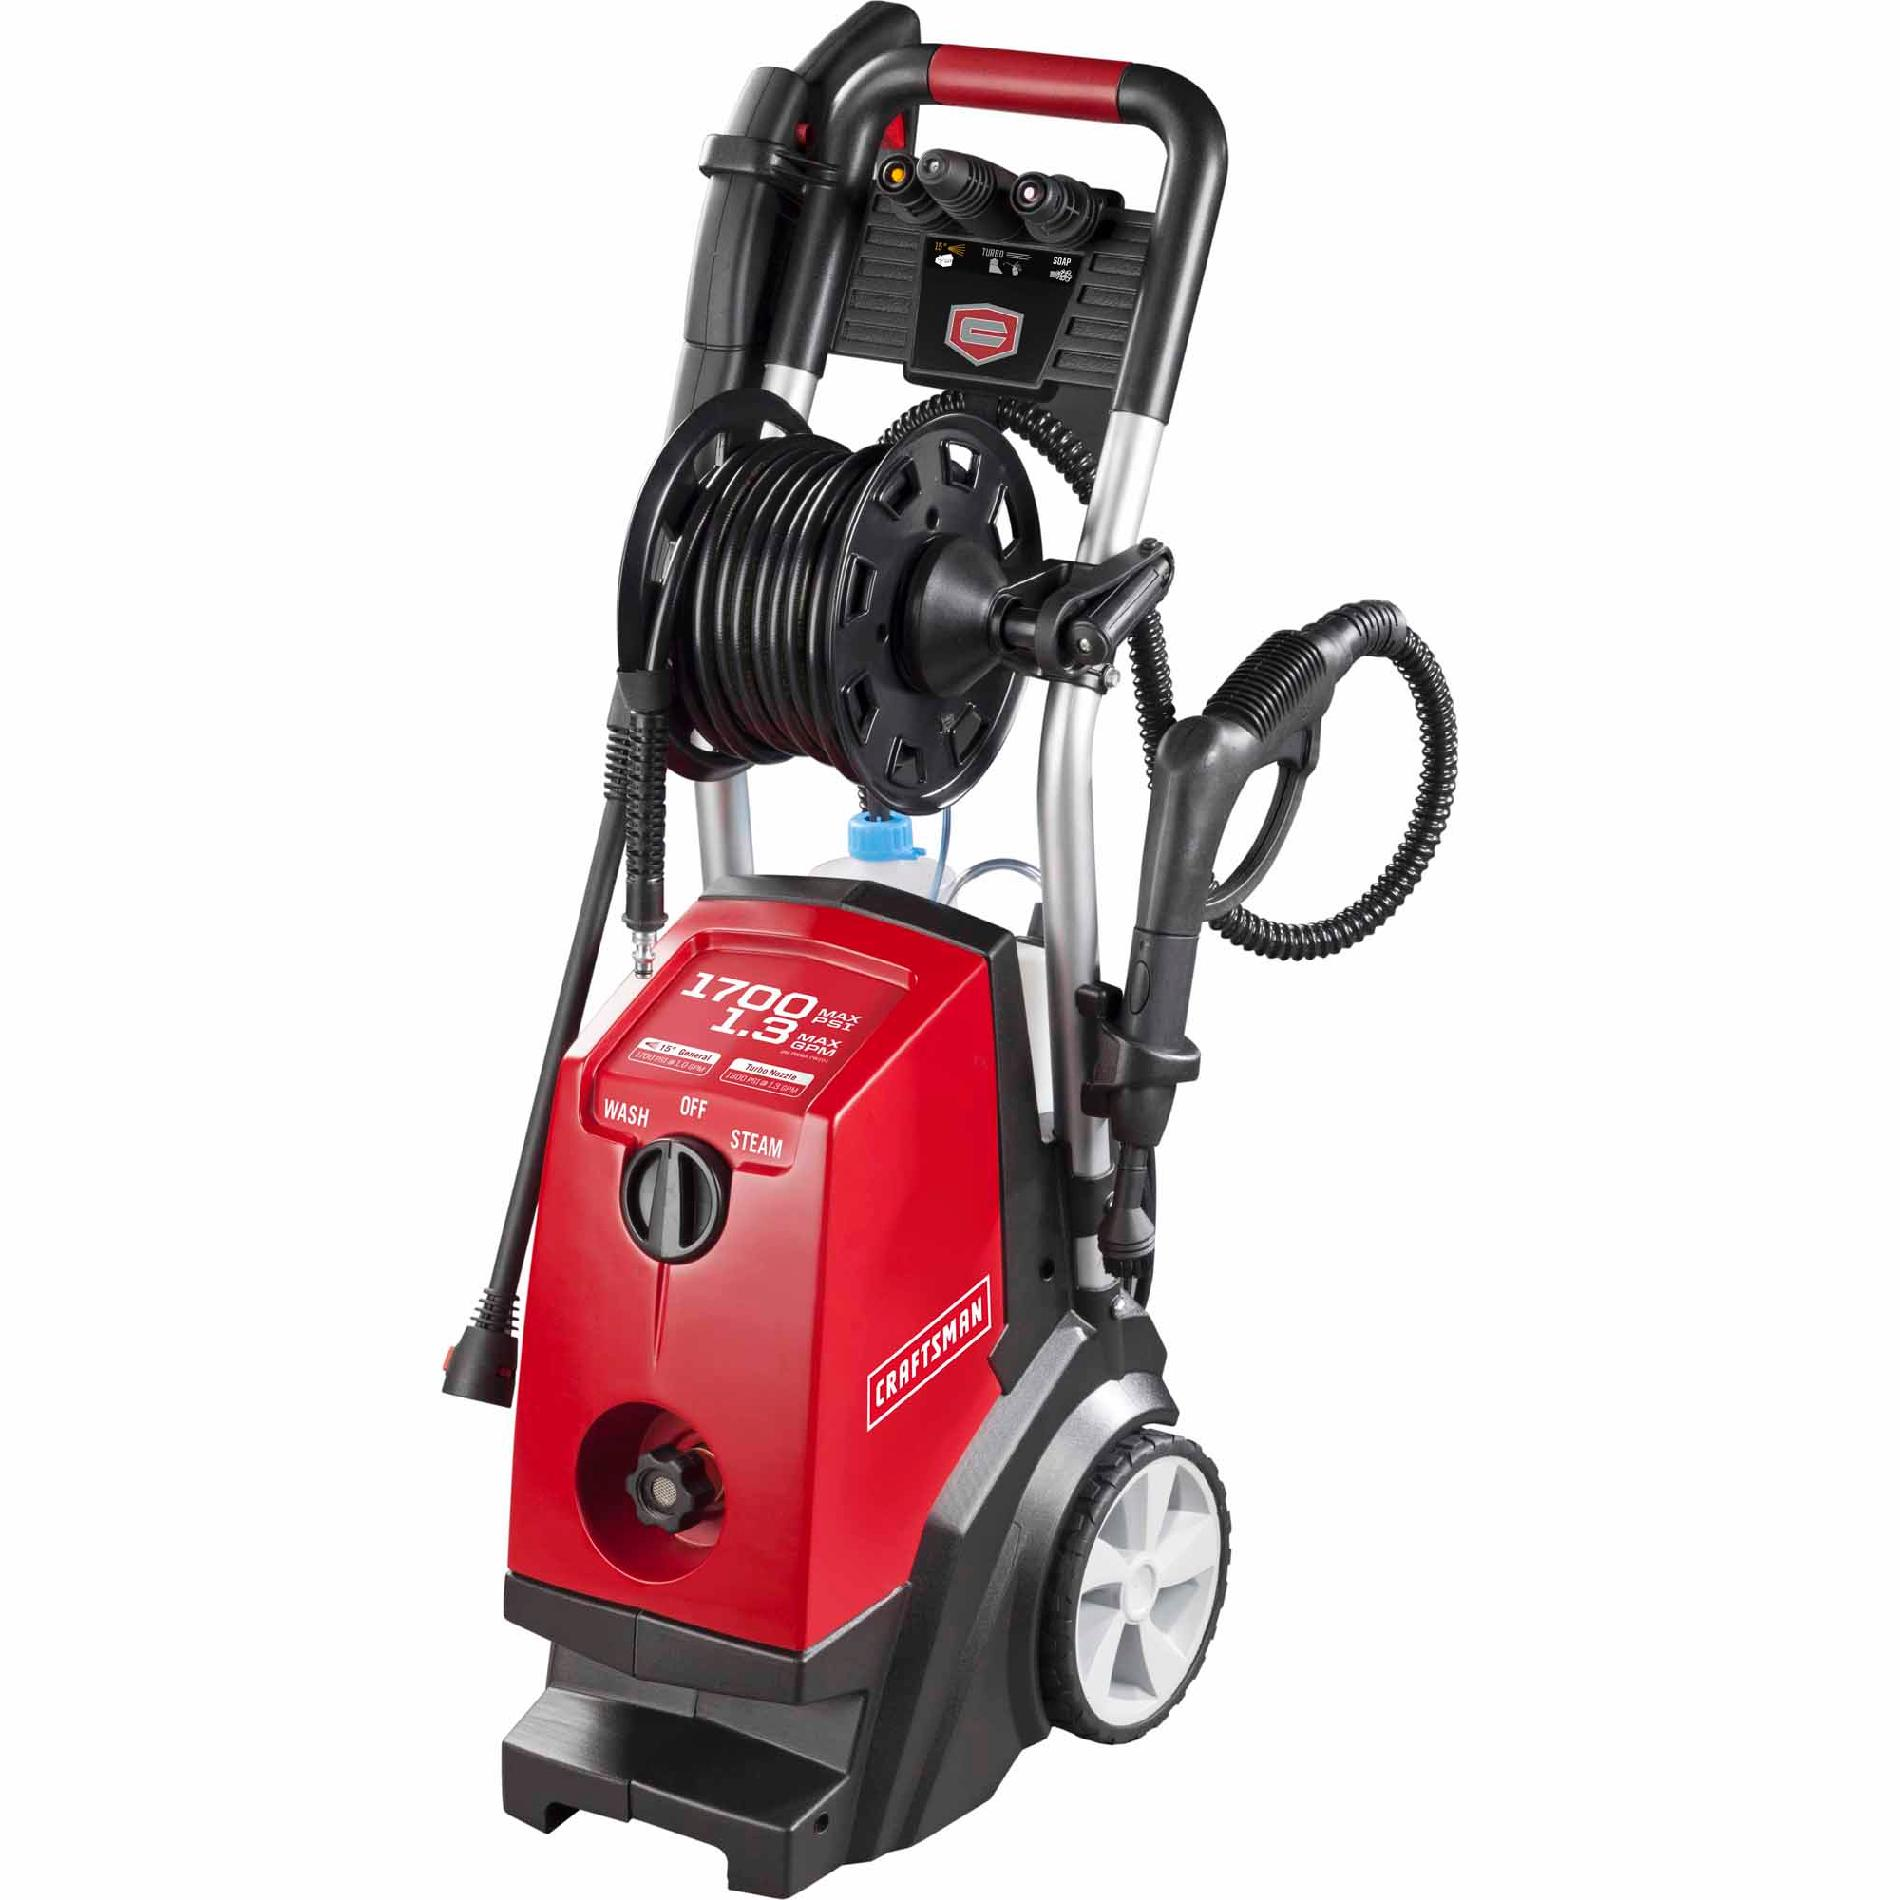 Craftsman 1,700 max PSI, 1.3 max GPM Electric Pressure Washer with Steam Cleaner